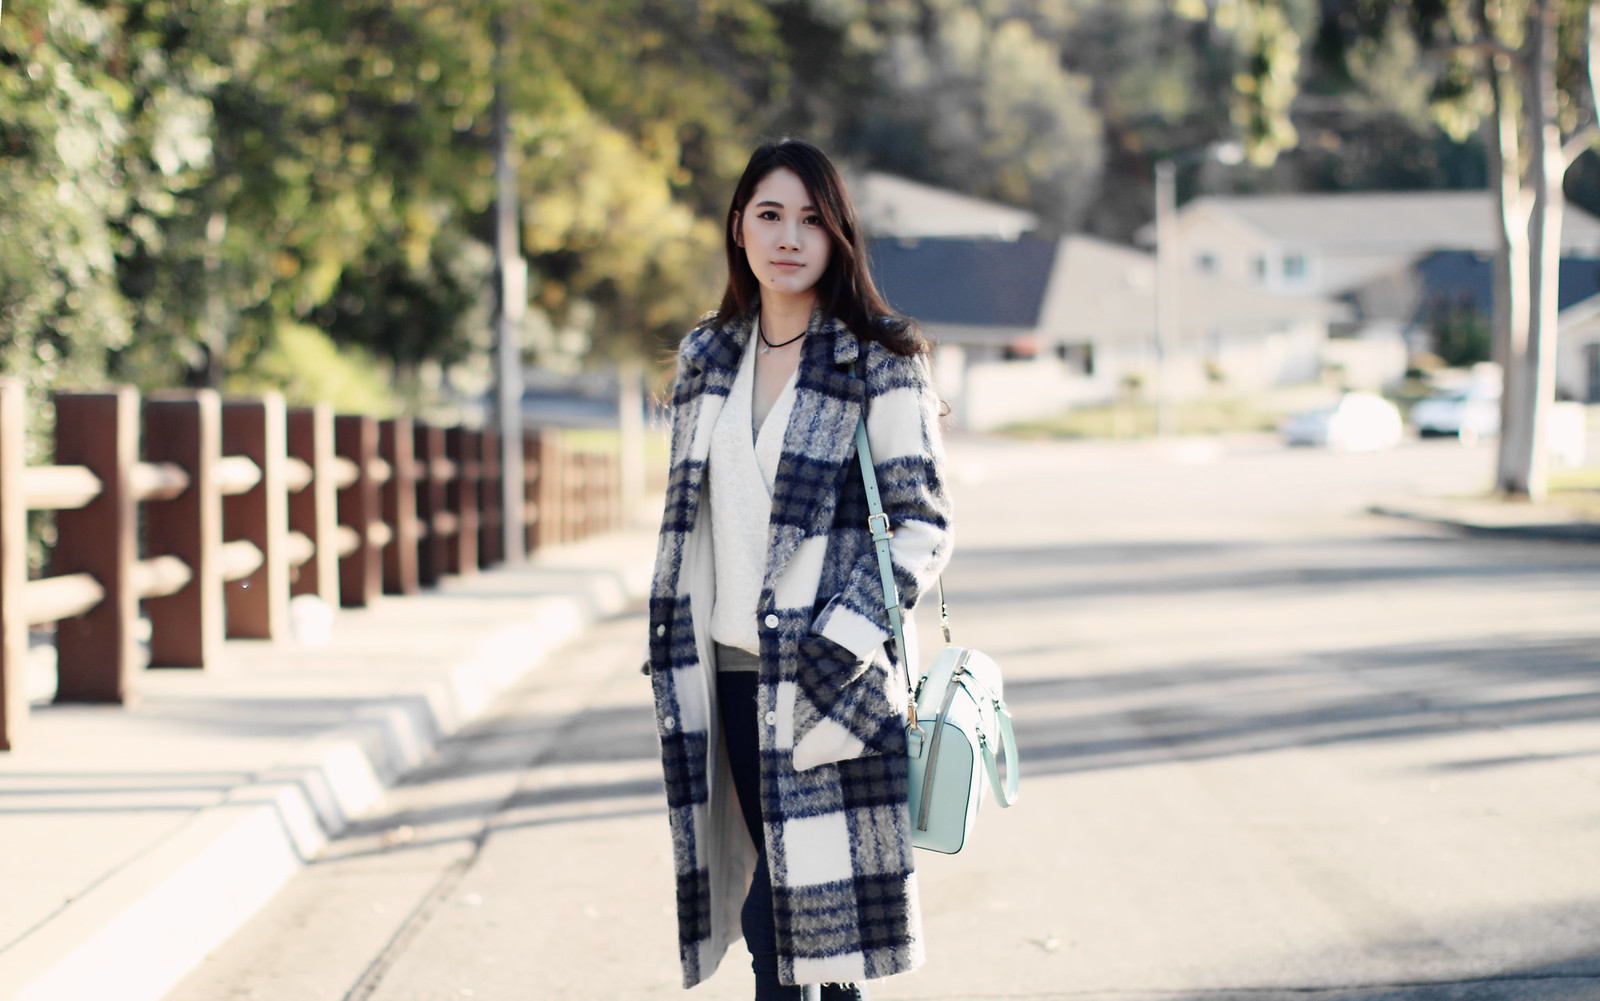 1480-ootd-fashion-blue-navy-forever21-coat-winterfashion-koreanfashion-ulzzangfashion-longlinecoat-clothestoyouuu-elizabeeetht